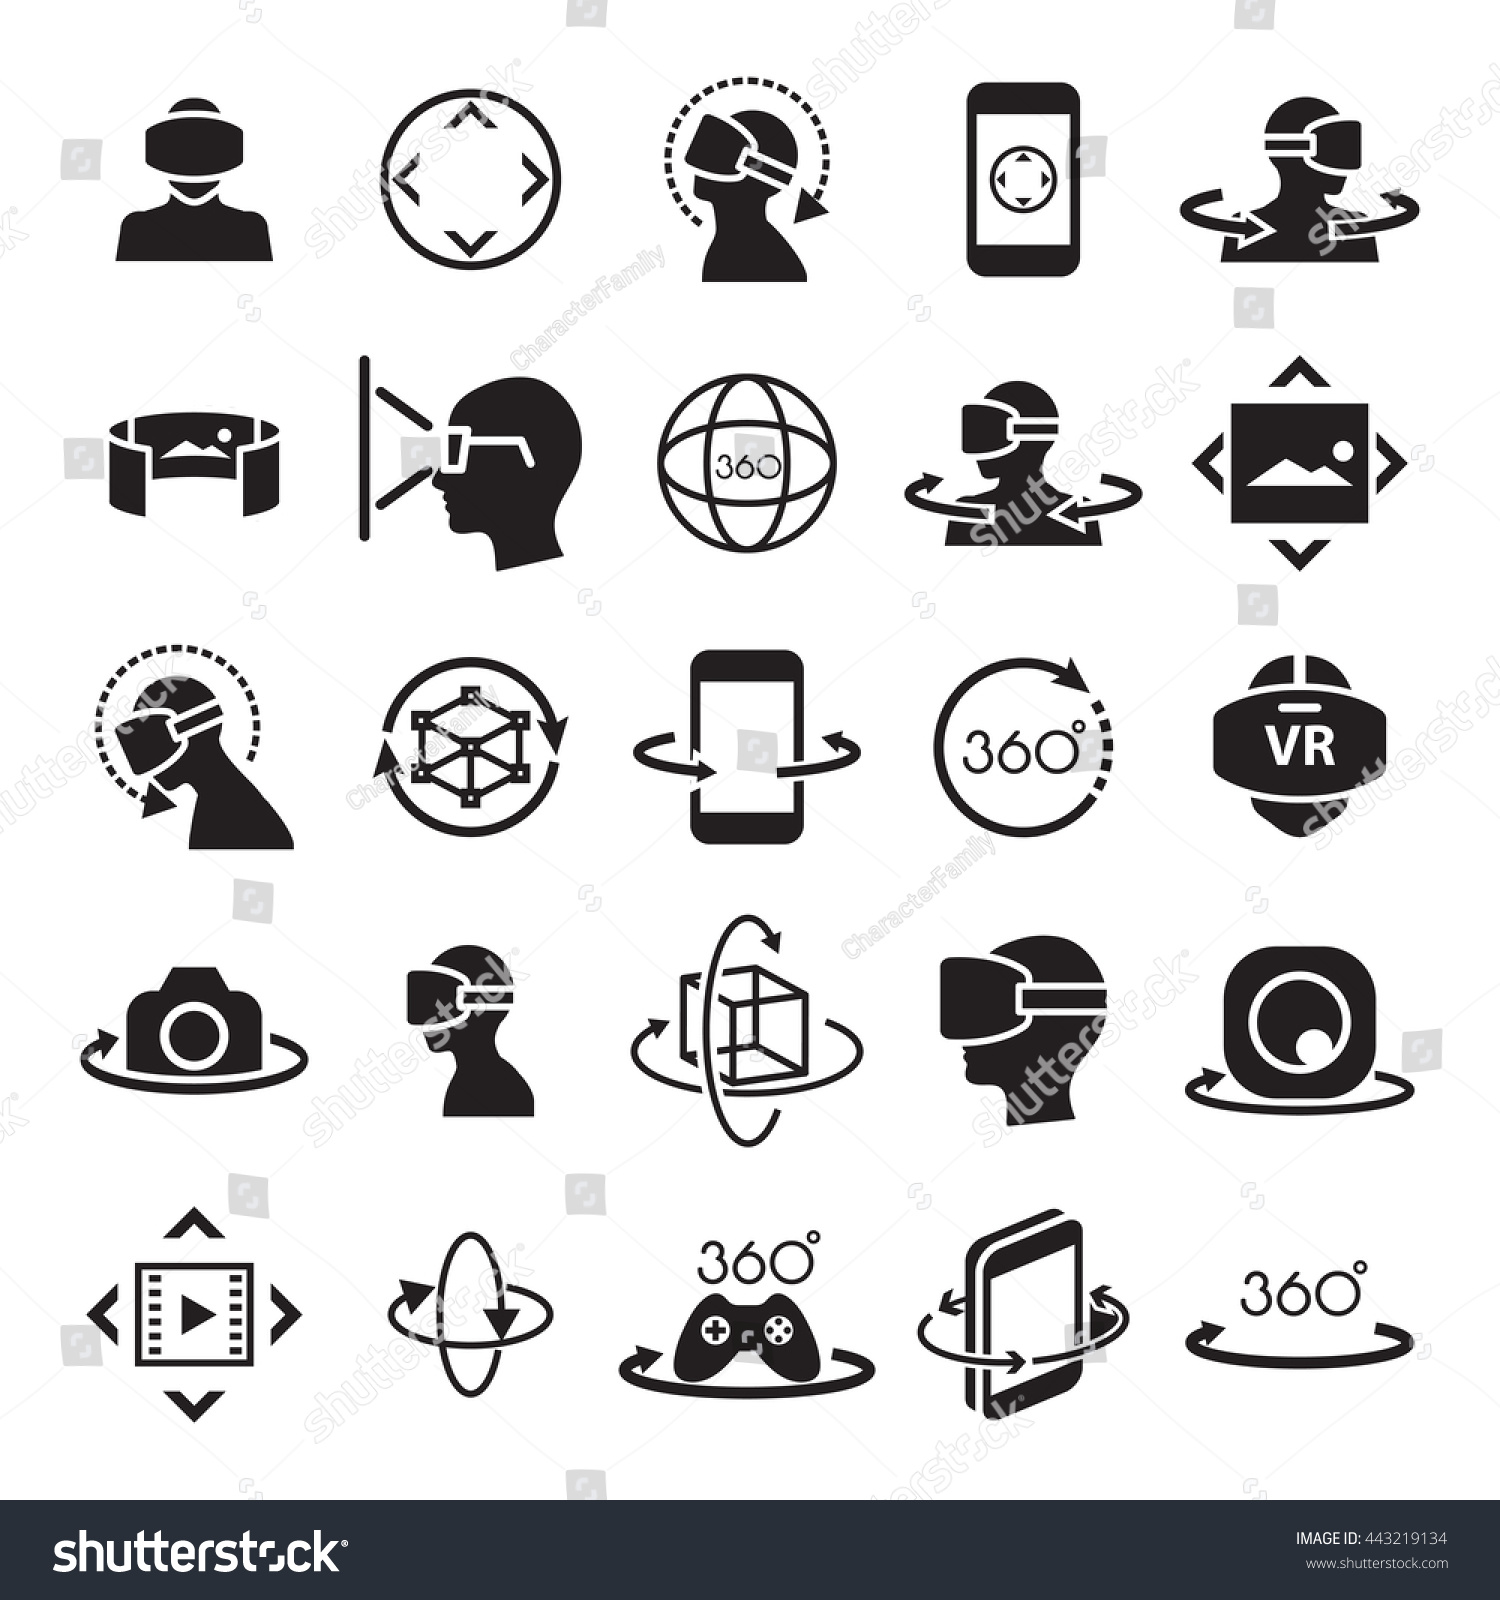 stock-vector-virtual-reality-icon-and-symbol-443219134